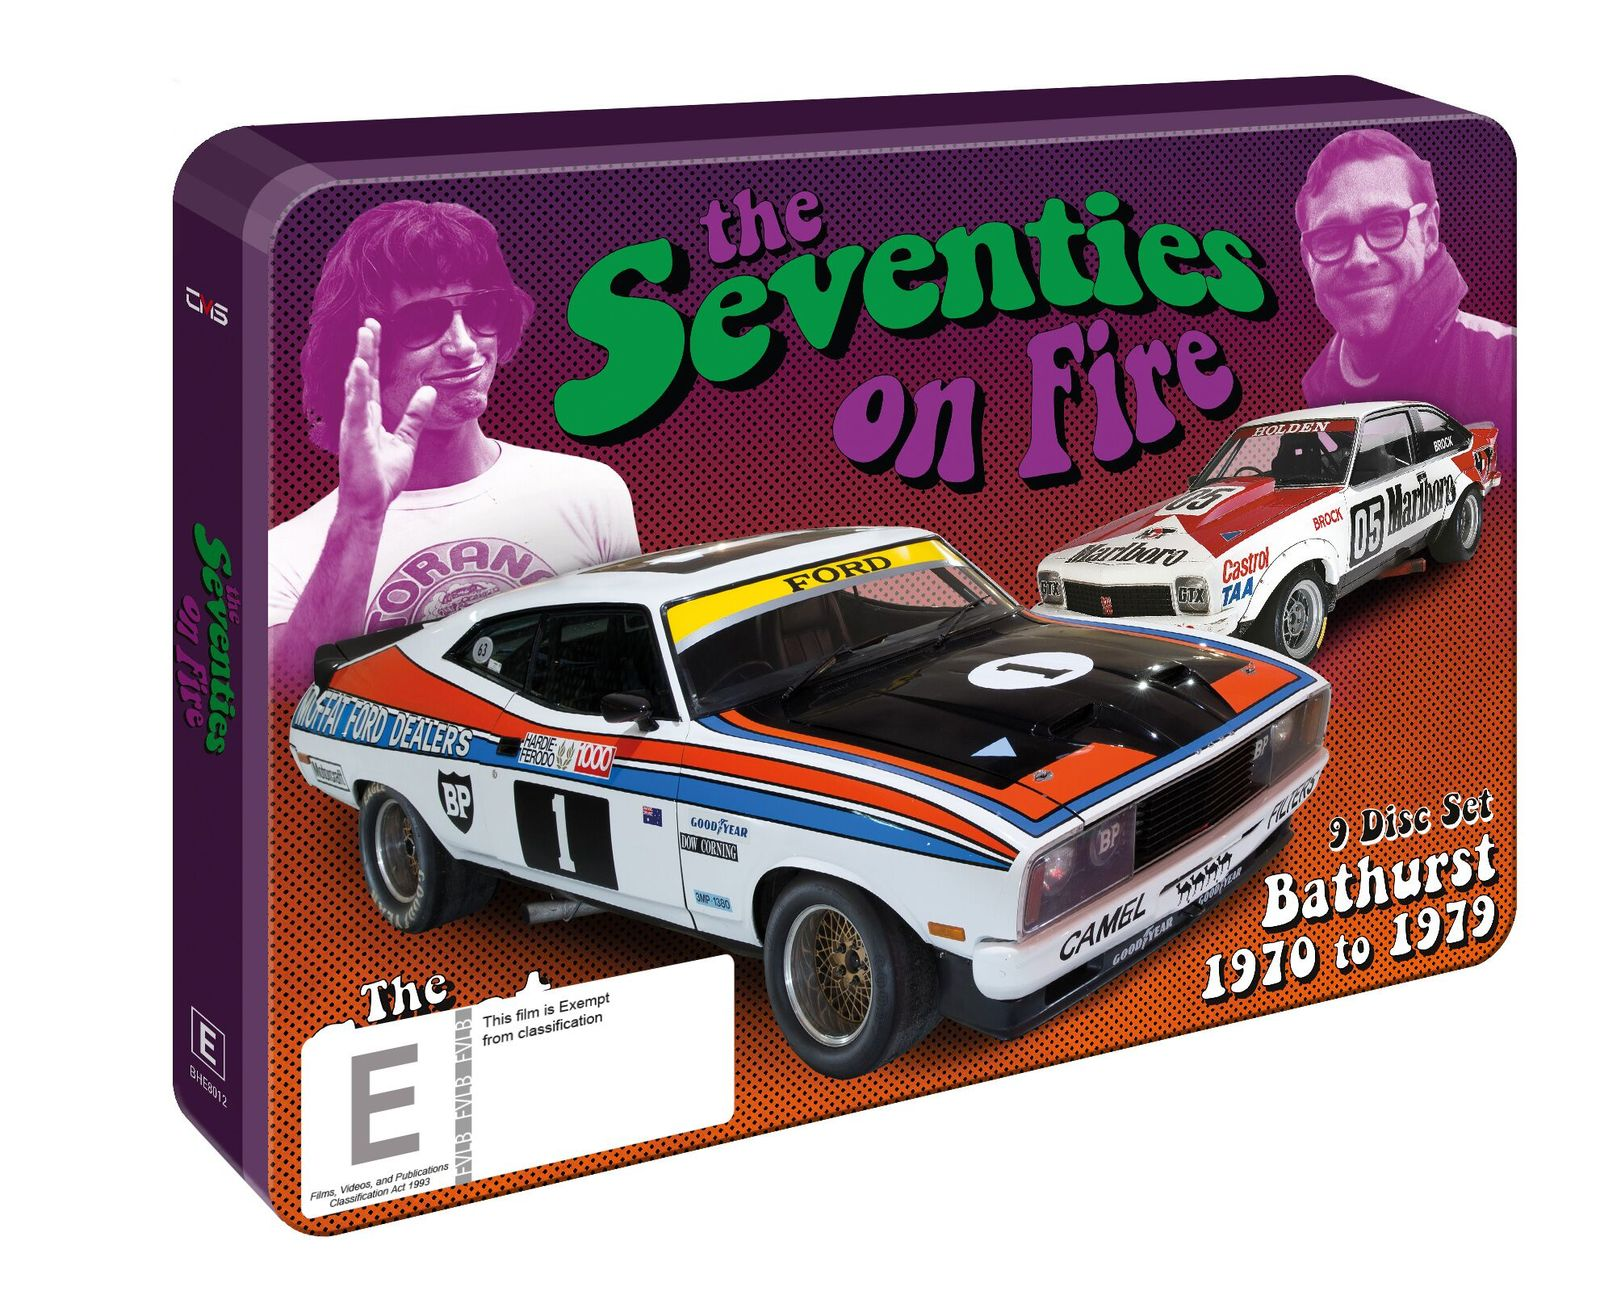 The 70's On Fire: Bathurst 1970-1979 Collector's Tin on DVD image